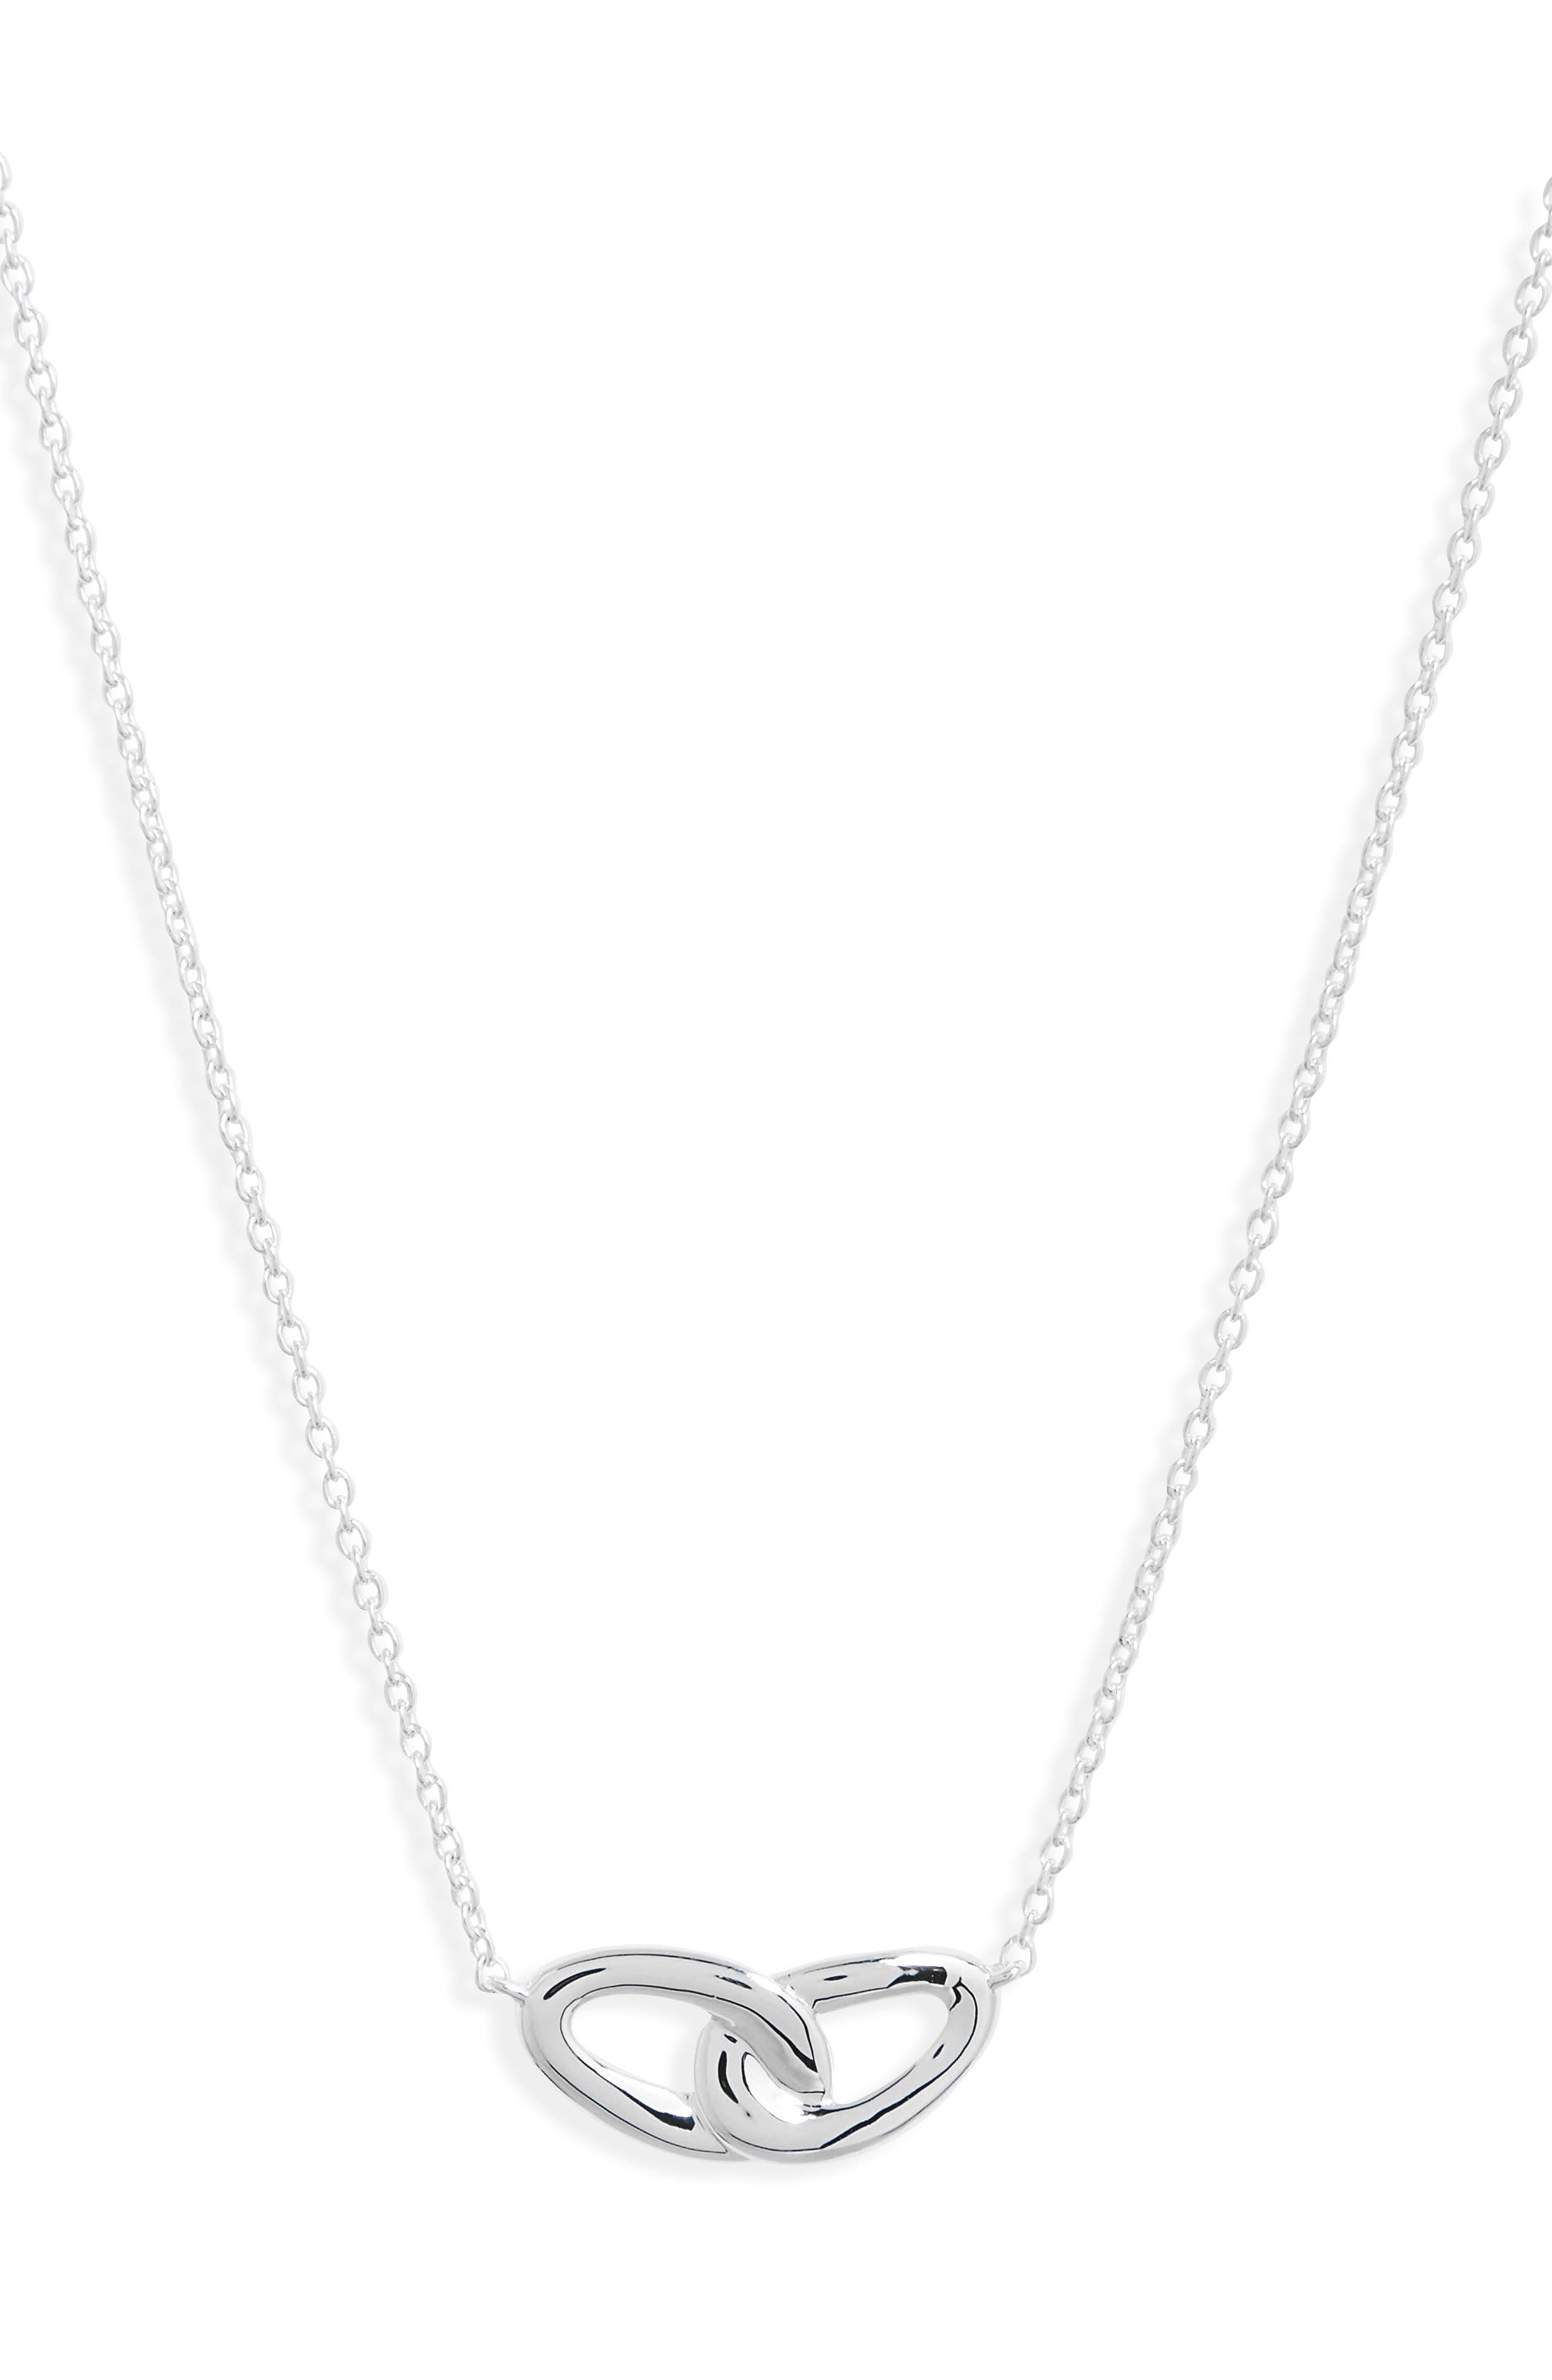 Cherish Interlocking Pendant Necklace,                             Main thumbnail 1, color,                             040